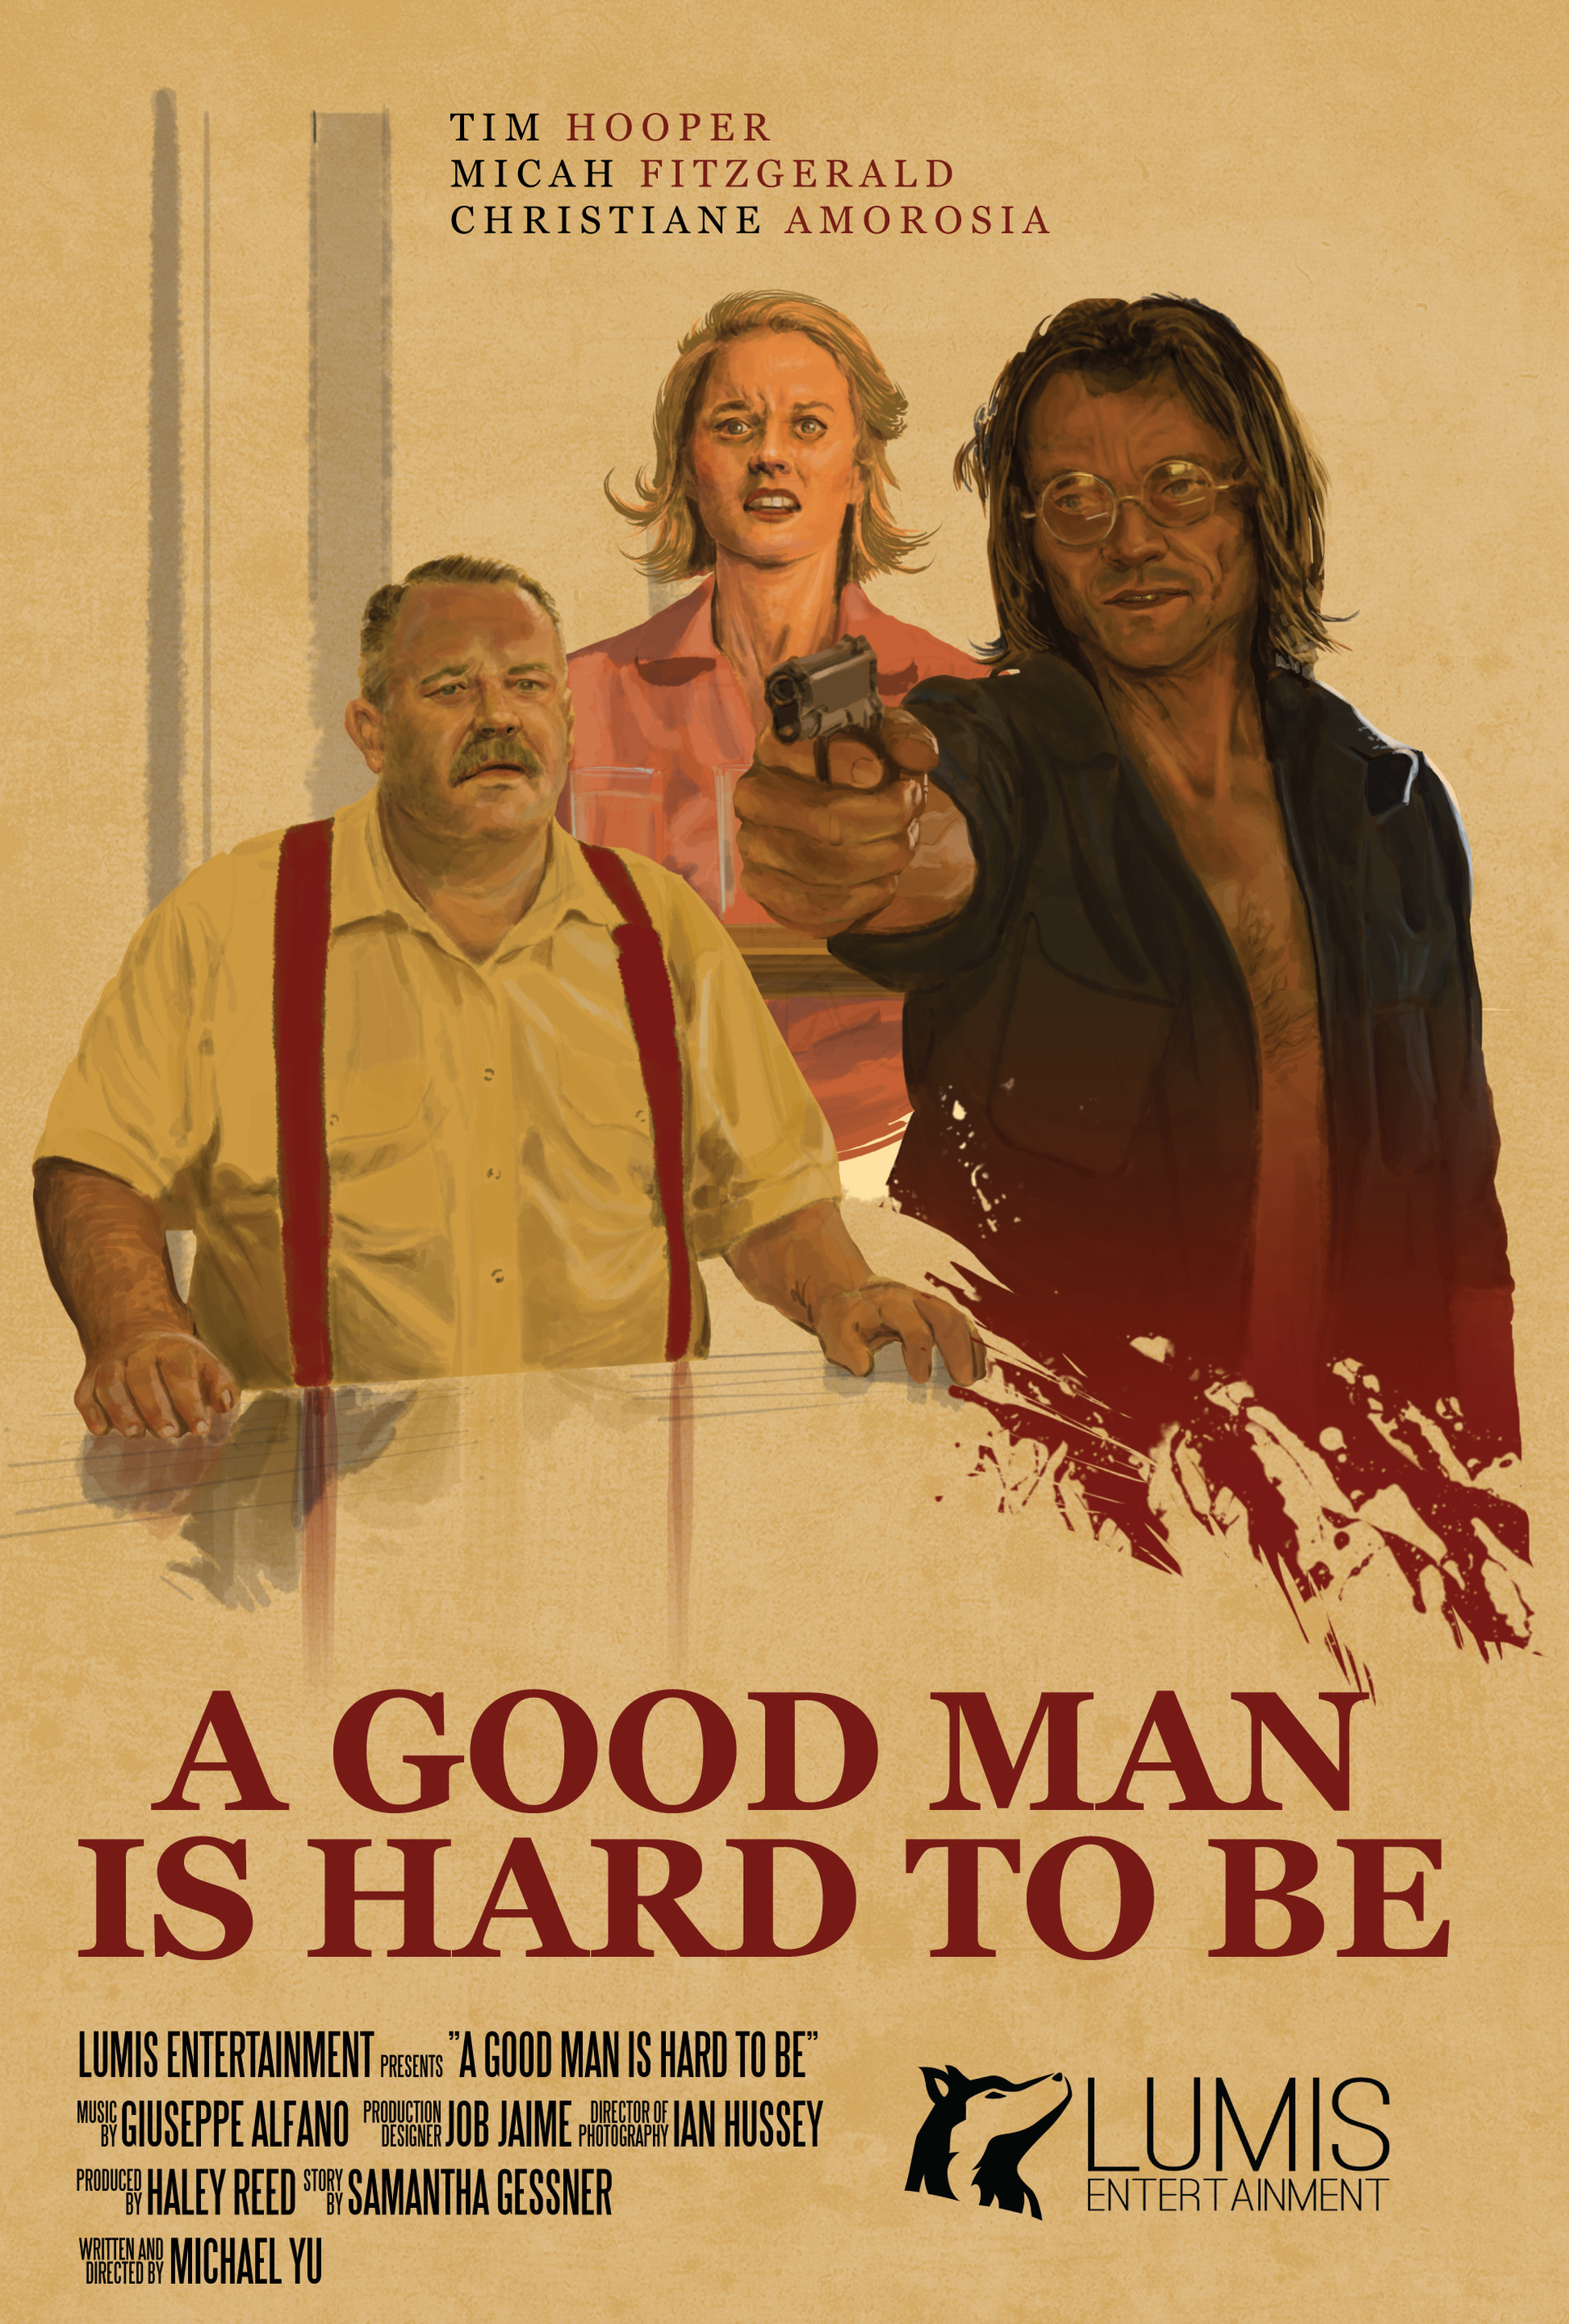 A Good Man is Hard to Be: Movie Poster, 2018